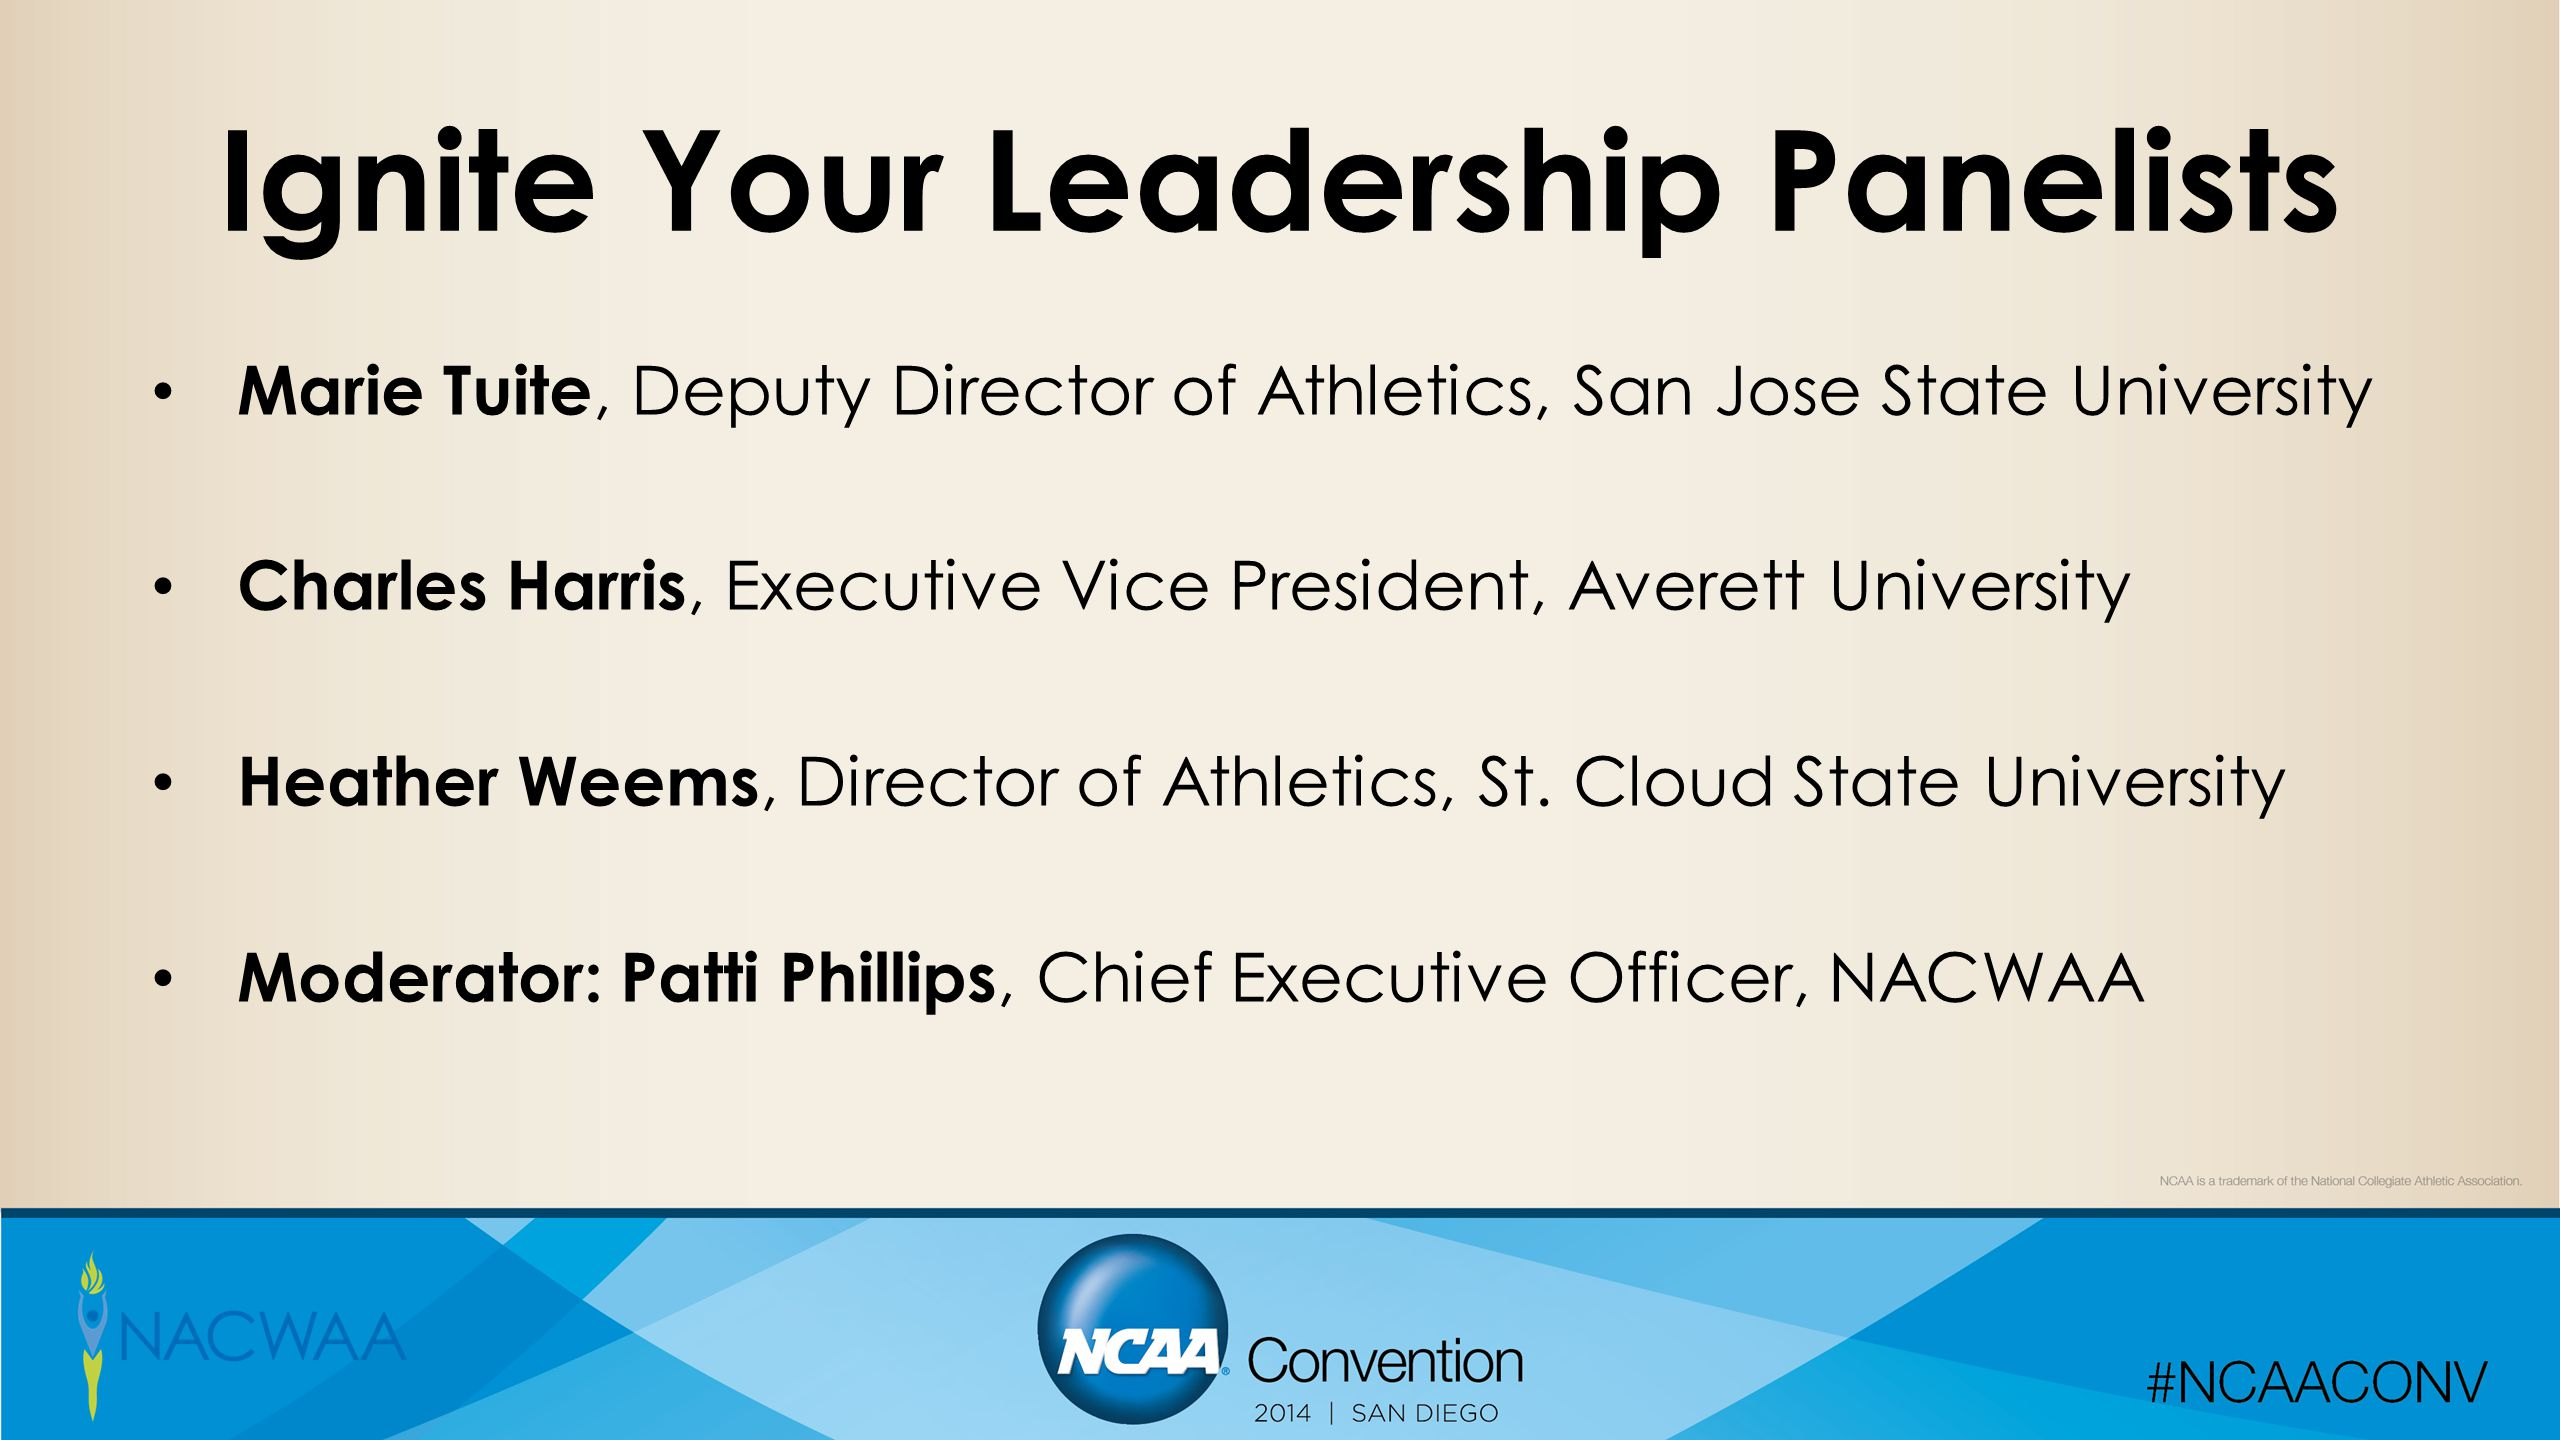 Ignite Your Leadership Panelists